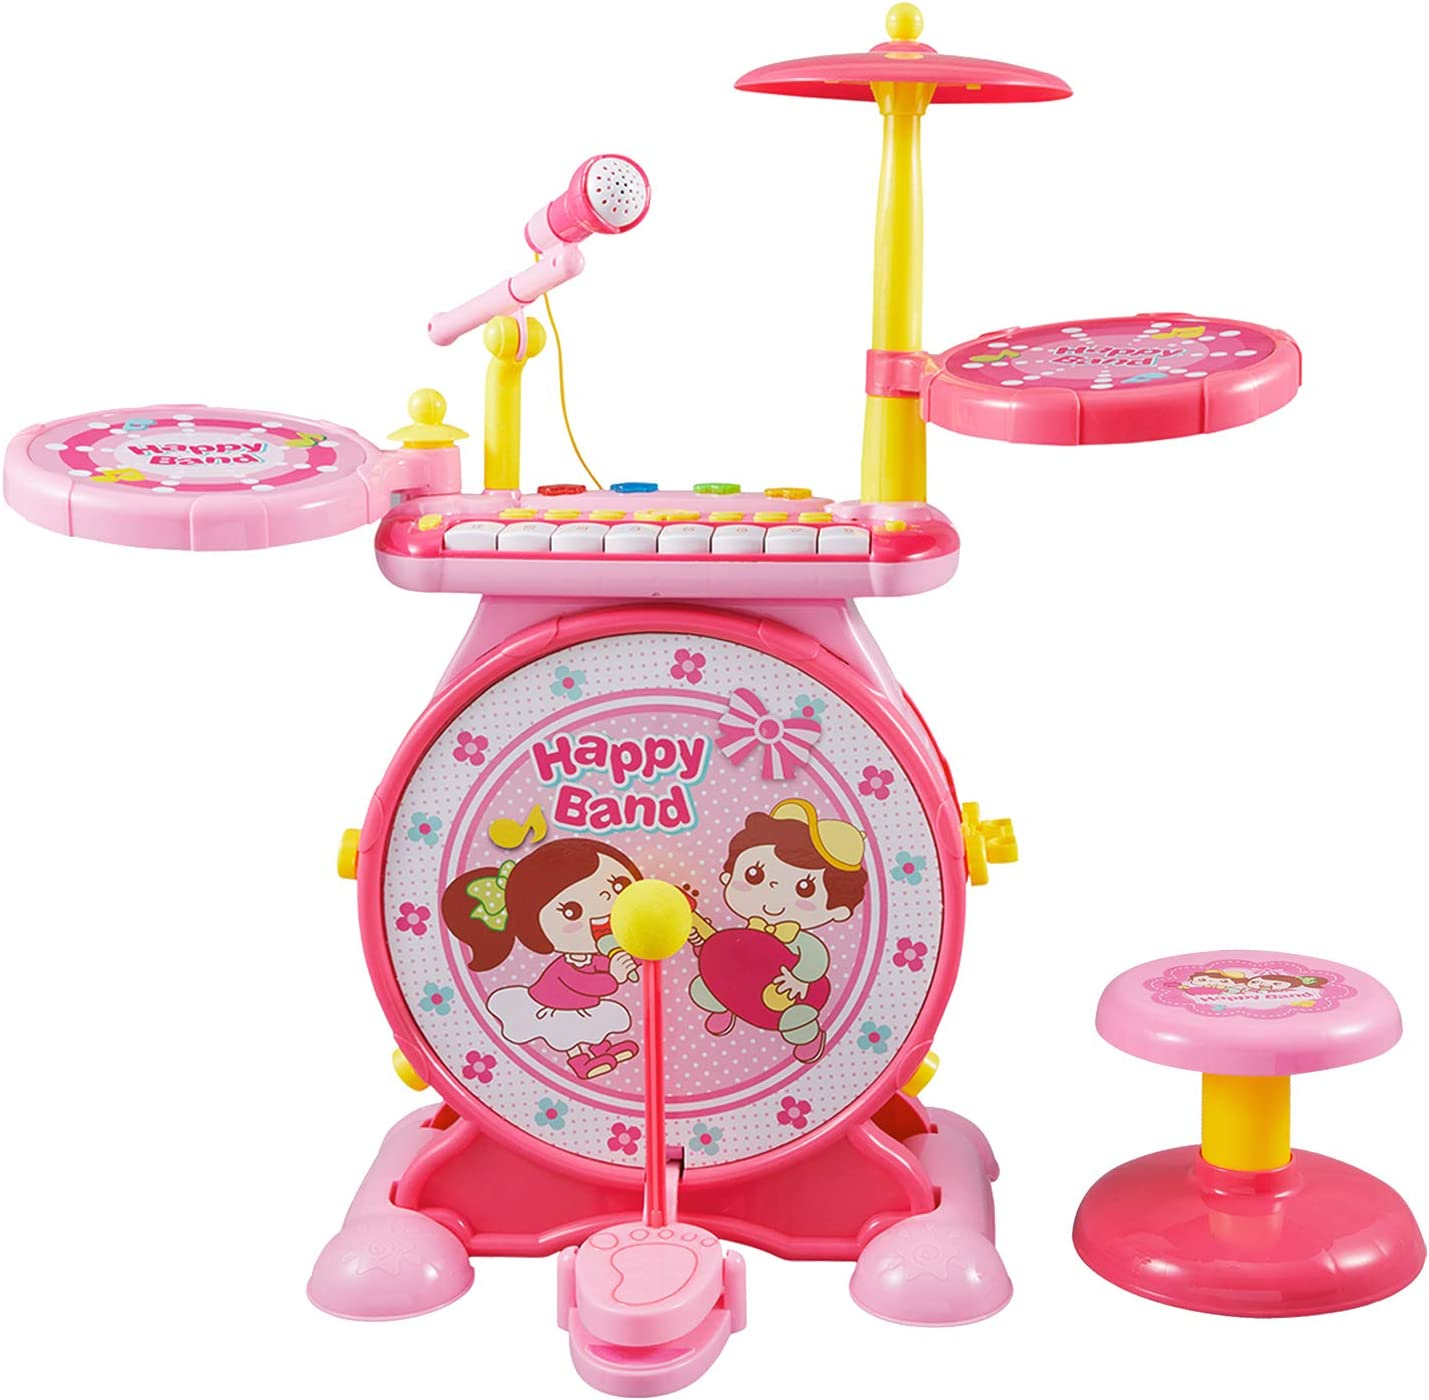 Reditmo Toddlers Toy Drum Set for Kids, with Mini Piano Keyboard, Microphone, Drum Sticks, Solid Stool, Cultivating Musical Talent, for 3-6 Years Old Baby, Children, Pink